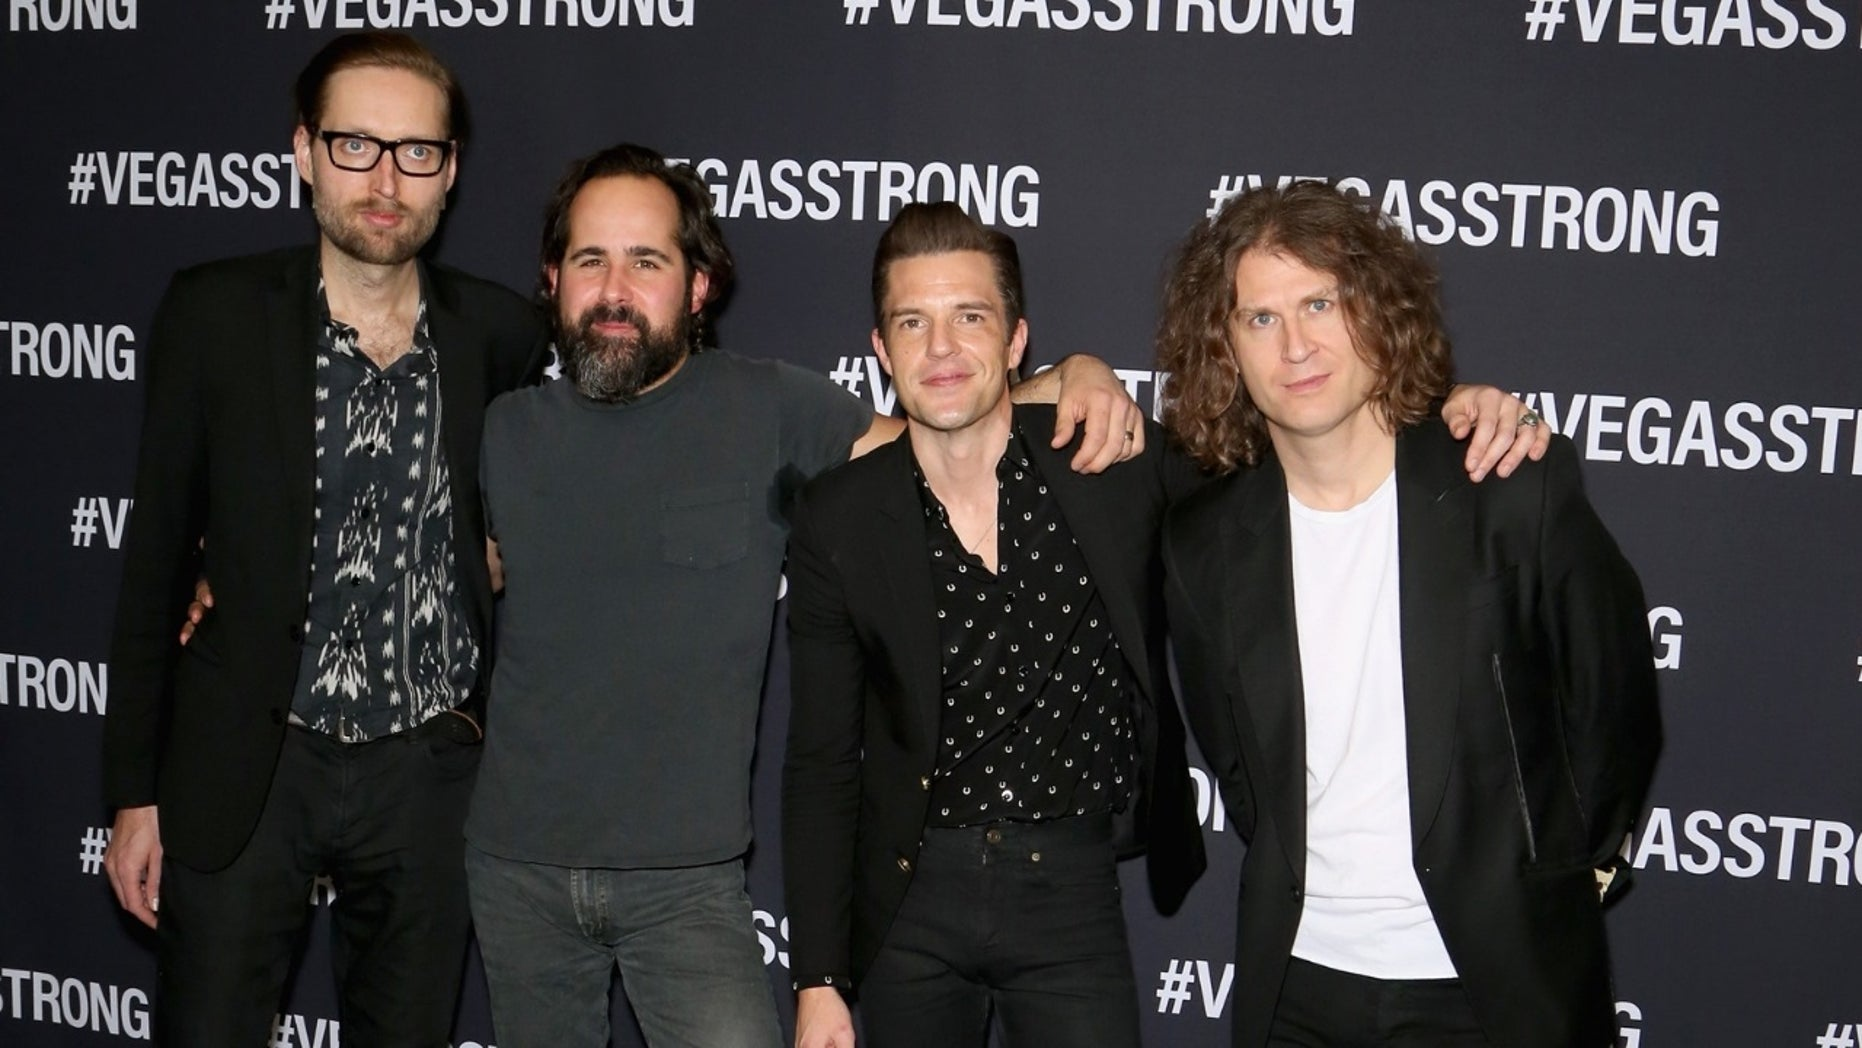 The Killers dropped a new song that tackled immigration and gun violence.